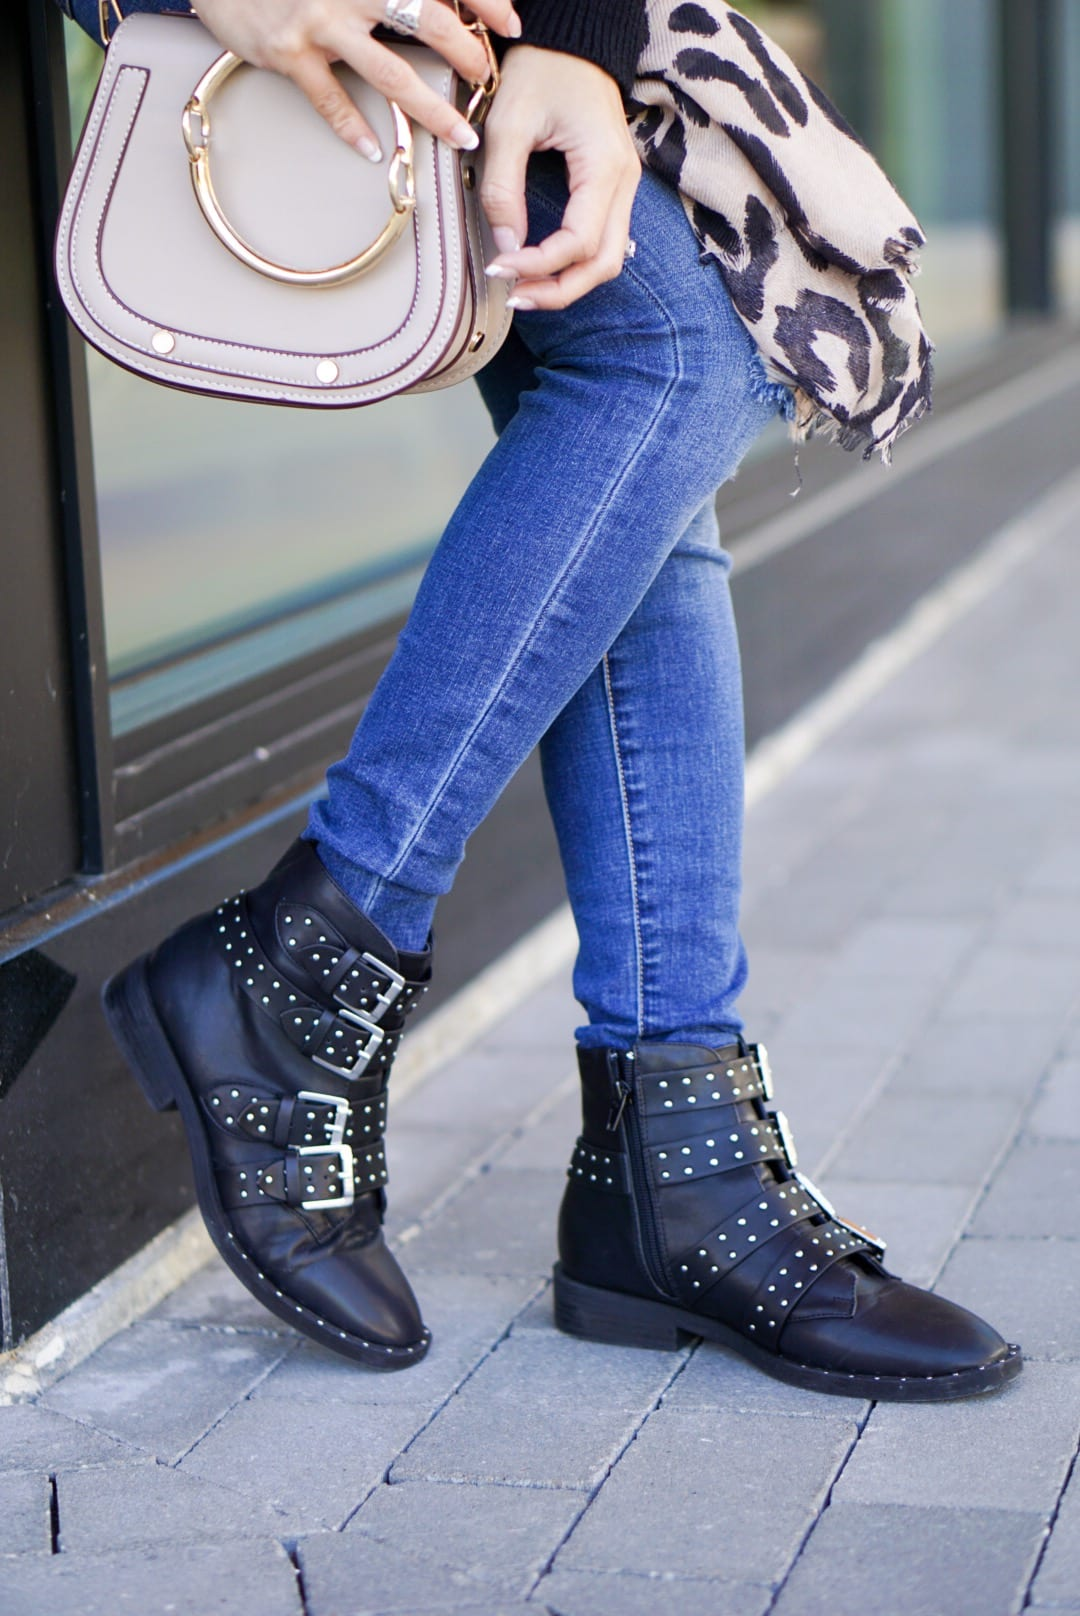 TARGET, SHOPBOB, HUNTER BOOTS, RED HUNTER BOOTS, STUDDED BOOTS, BOOTS FOR FALL, FALL SHOES, PEEP TOE BOOTS, SOCK BOOTIES, LEOPARD BOOTIES, LEOPARD MULES, LEOPARD SLIDES, FALL SHOES, FALL SHOE MUST HAVES, FALL BOOTS, OVER THE KNEE BOOTS, OTK BOOTS, CHLOE DUPE, STUDDED BOOTIES